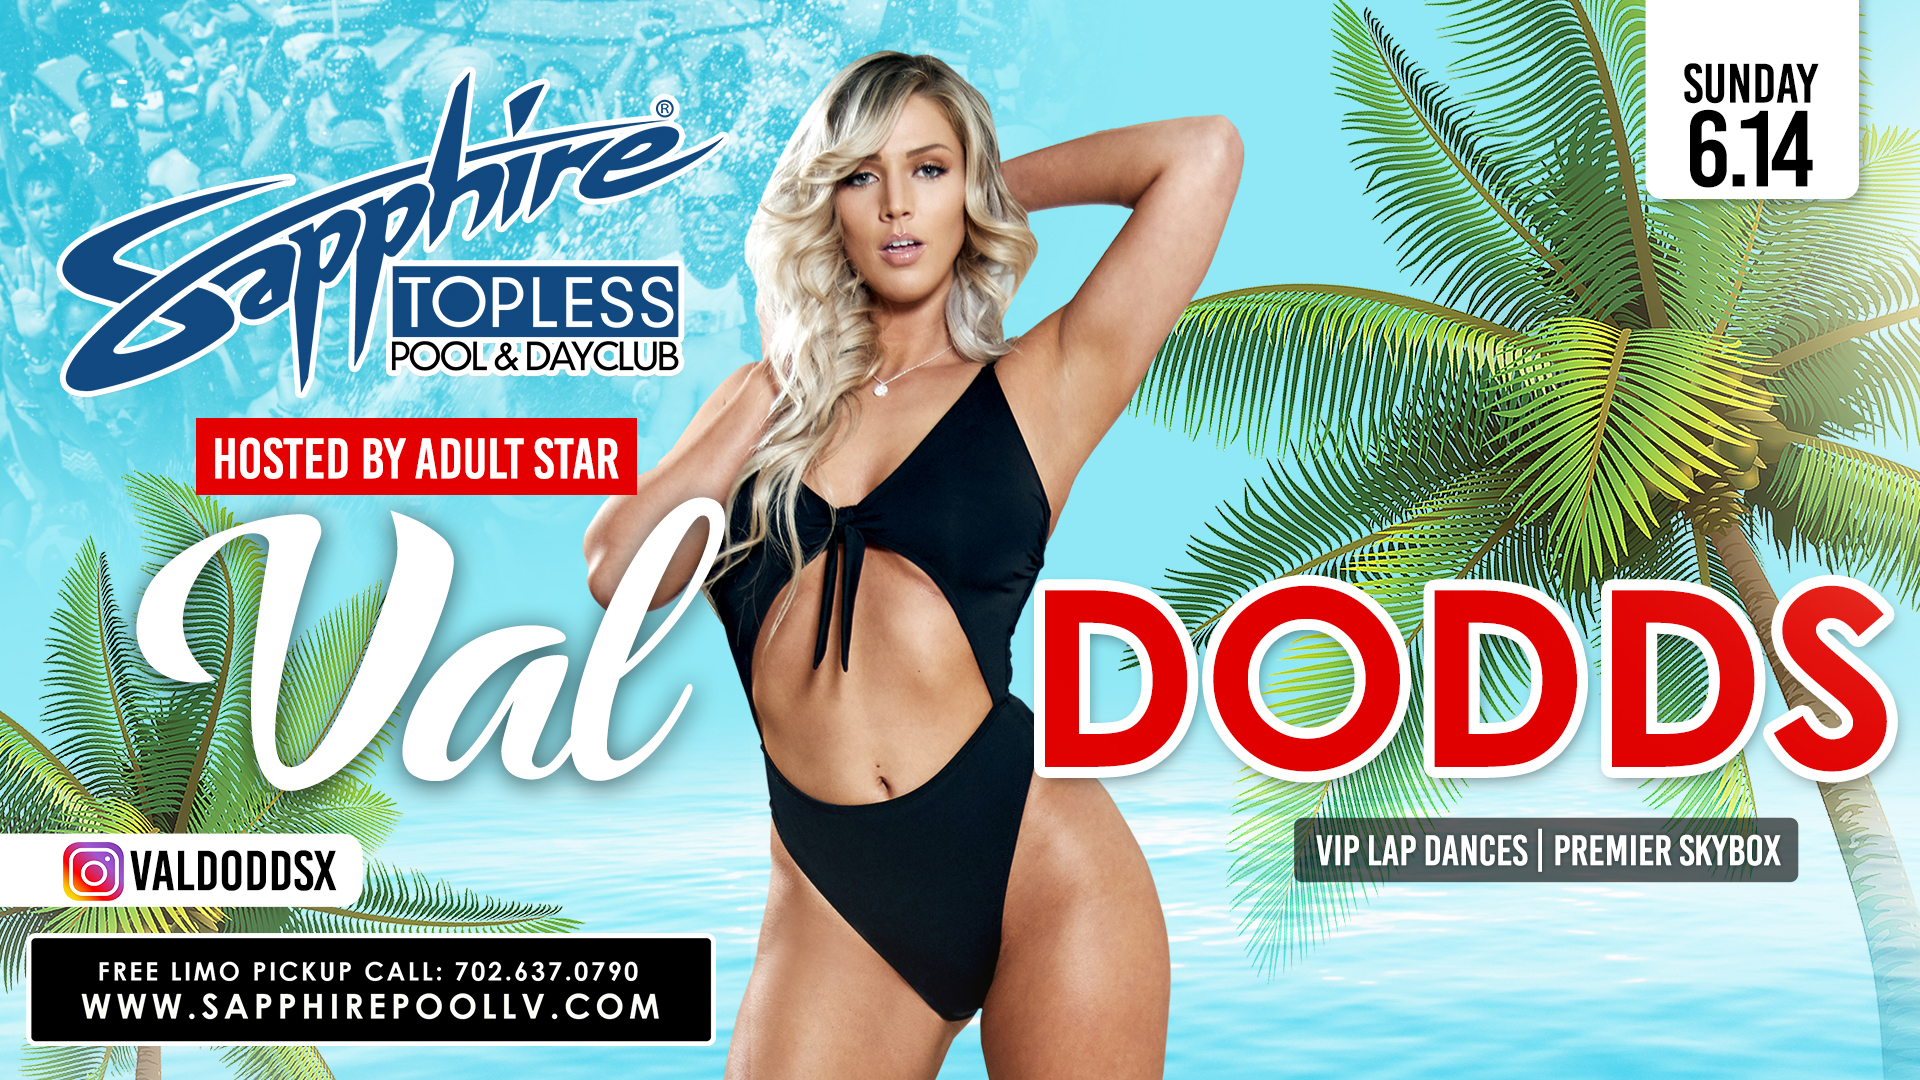 Adult Star Val Dodds Hosts Sapphire Topless Pool and Dayclub Sunday, June 14th